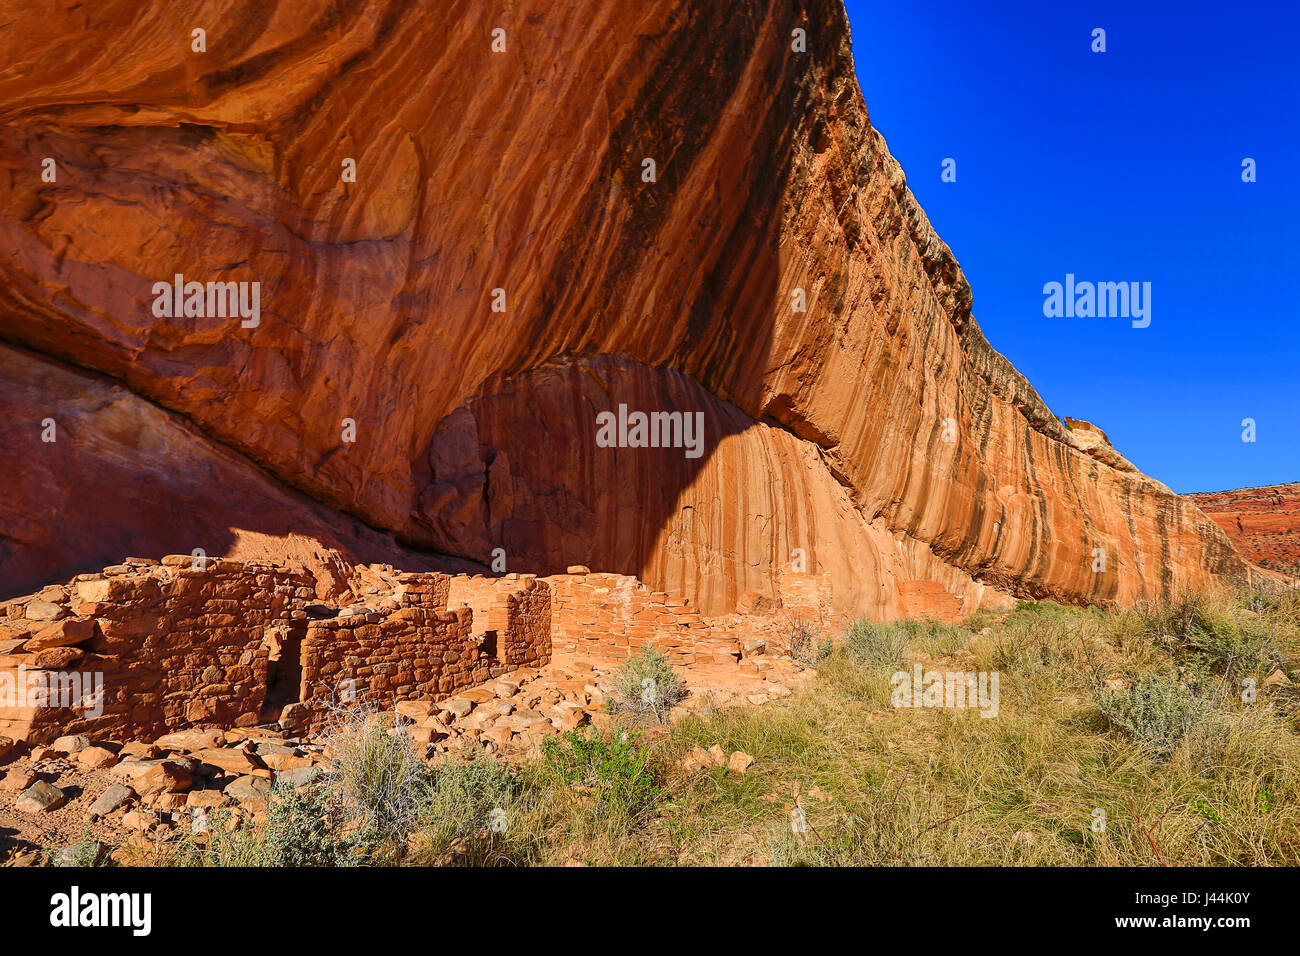 A  rock wall at the Arch Canyon Ruin, an Ancestral Puebloan ruin in an alcove at the bottom of Arch Canyon in the - Stock Image